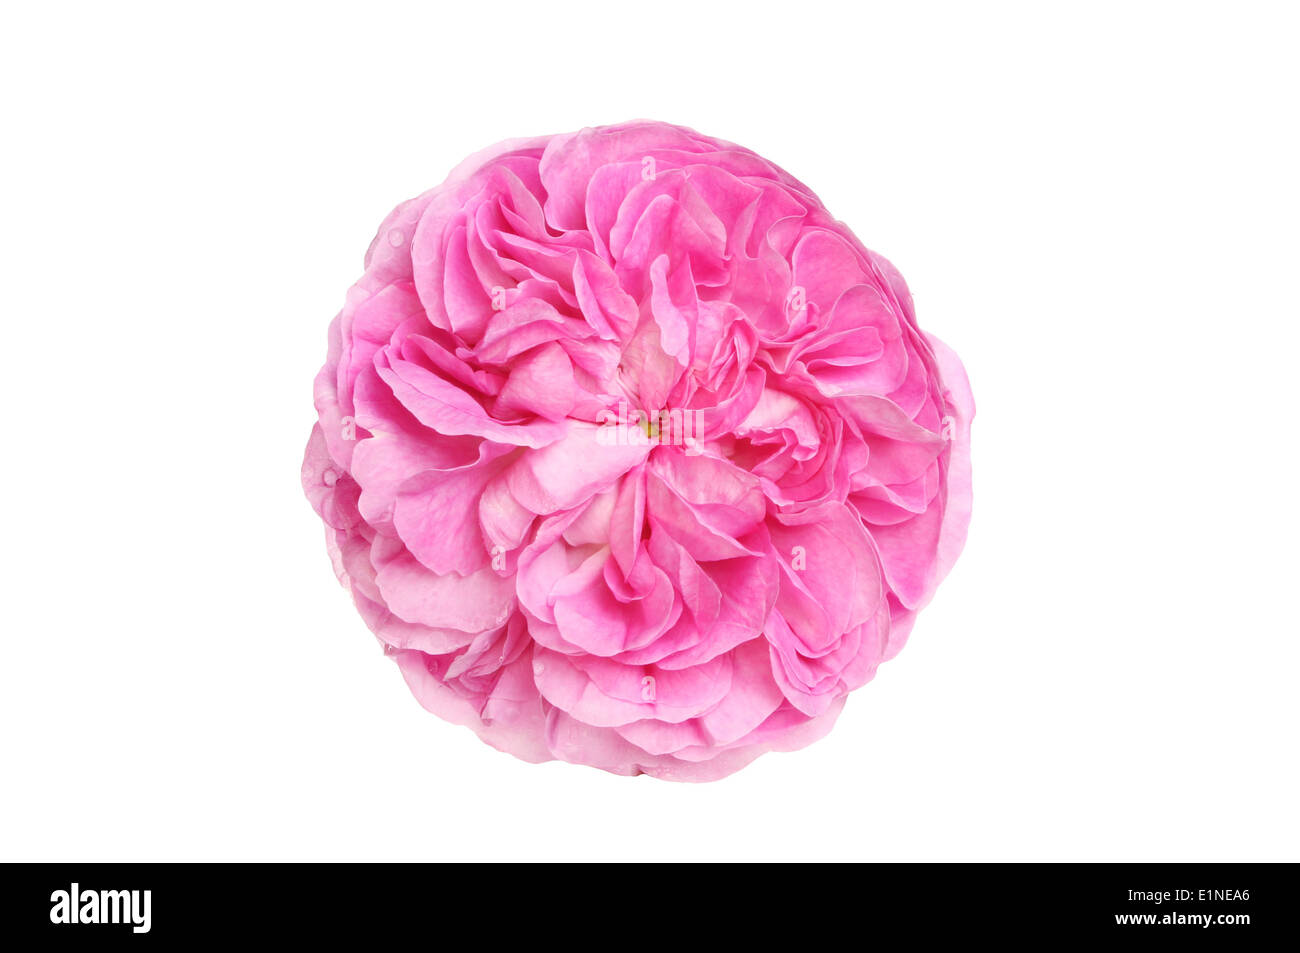 Round flowerhead of a magenta rose isolated against white - Stock Image